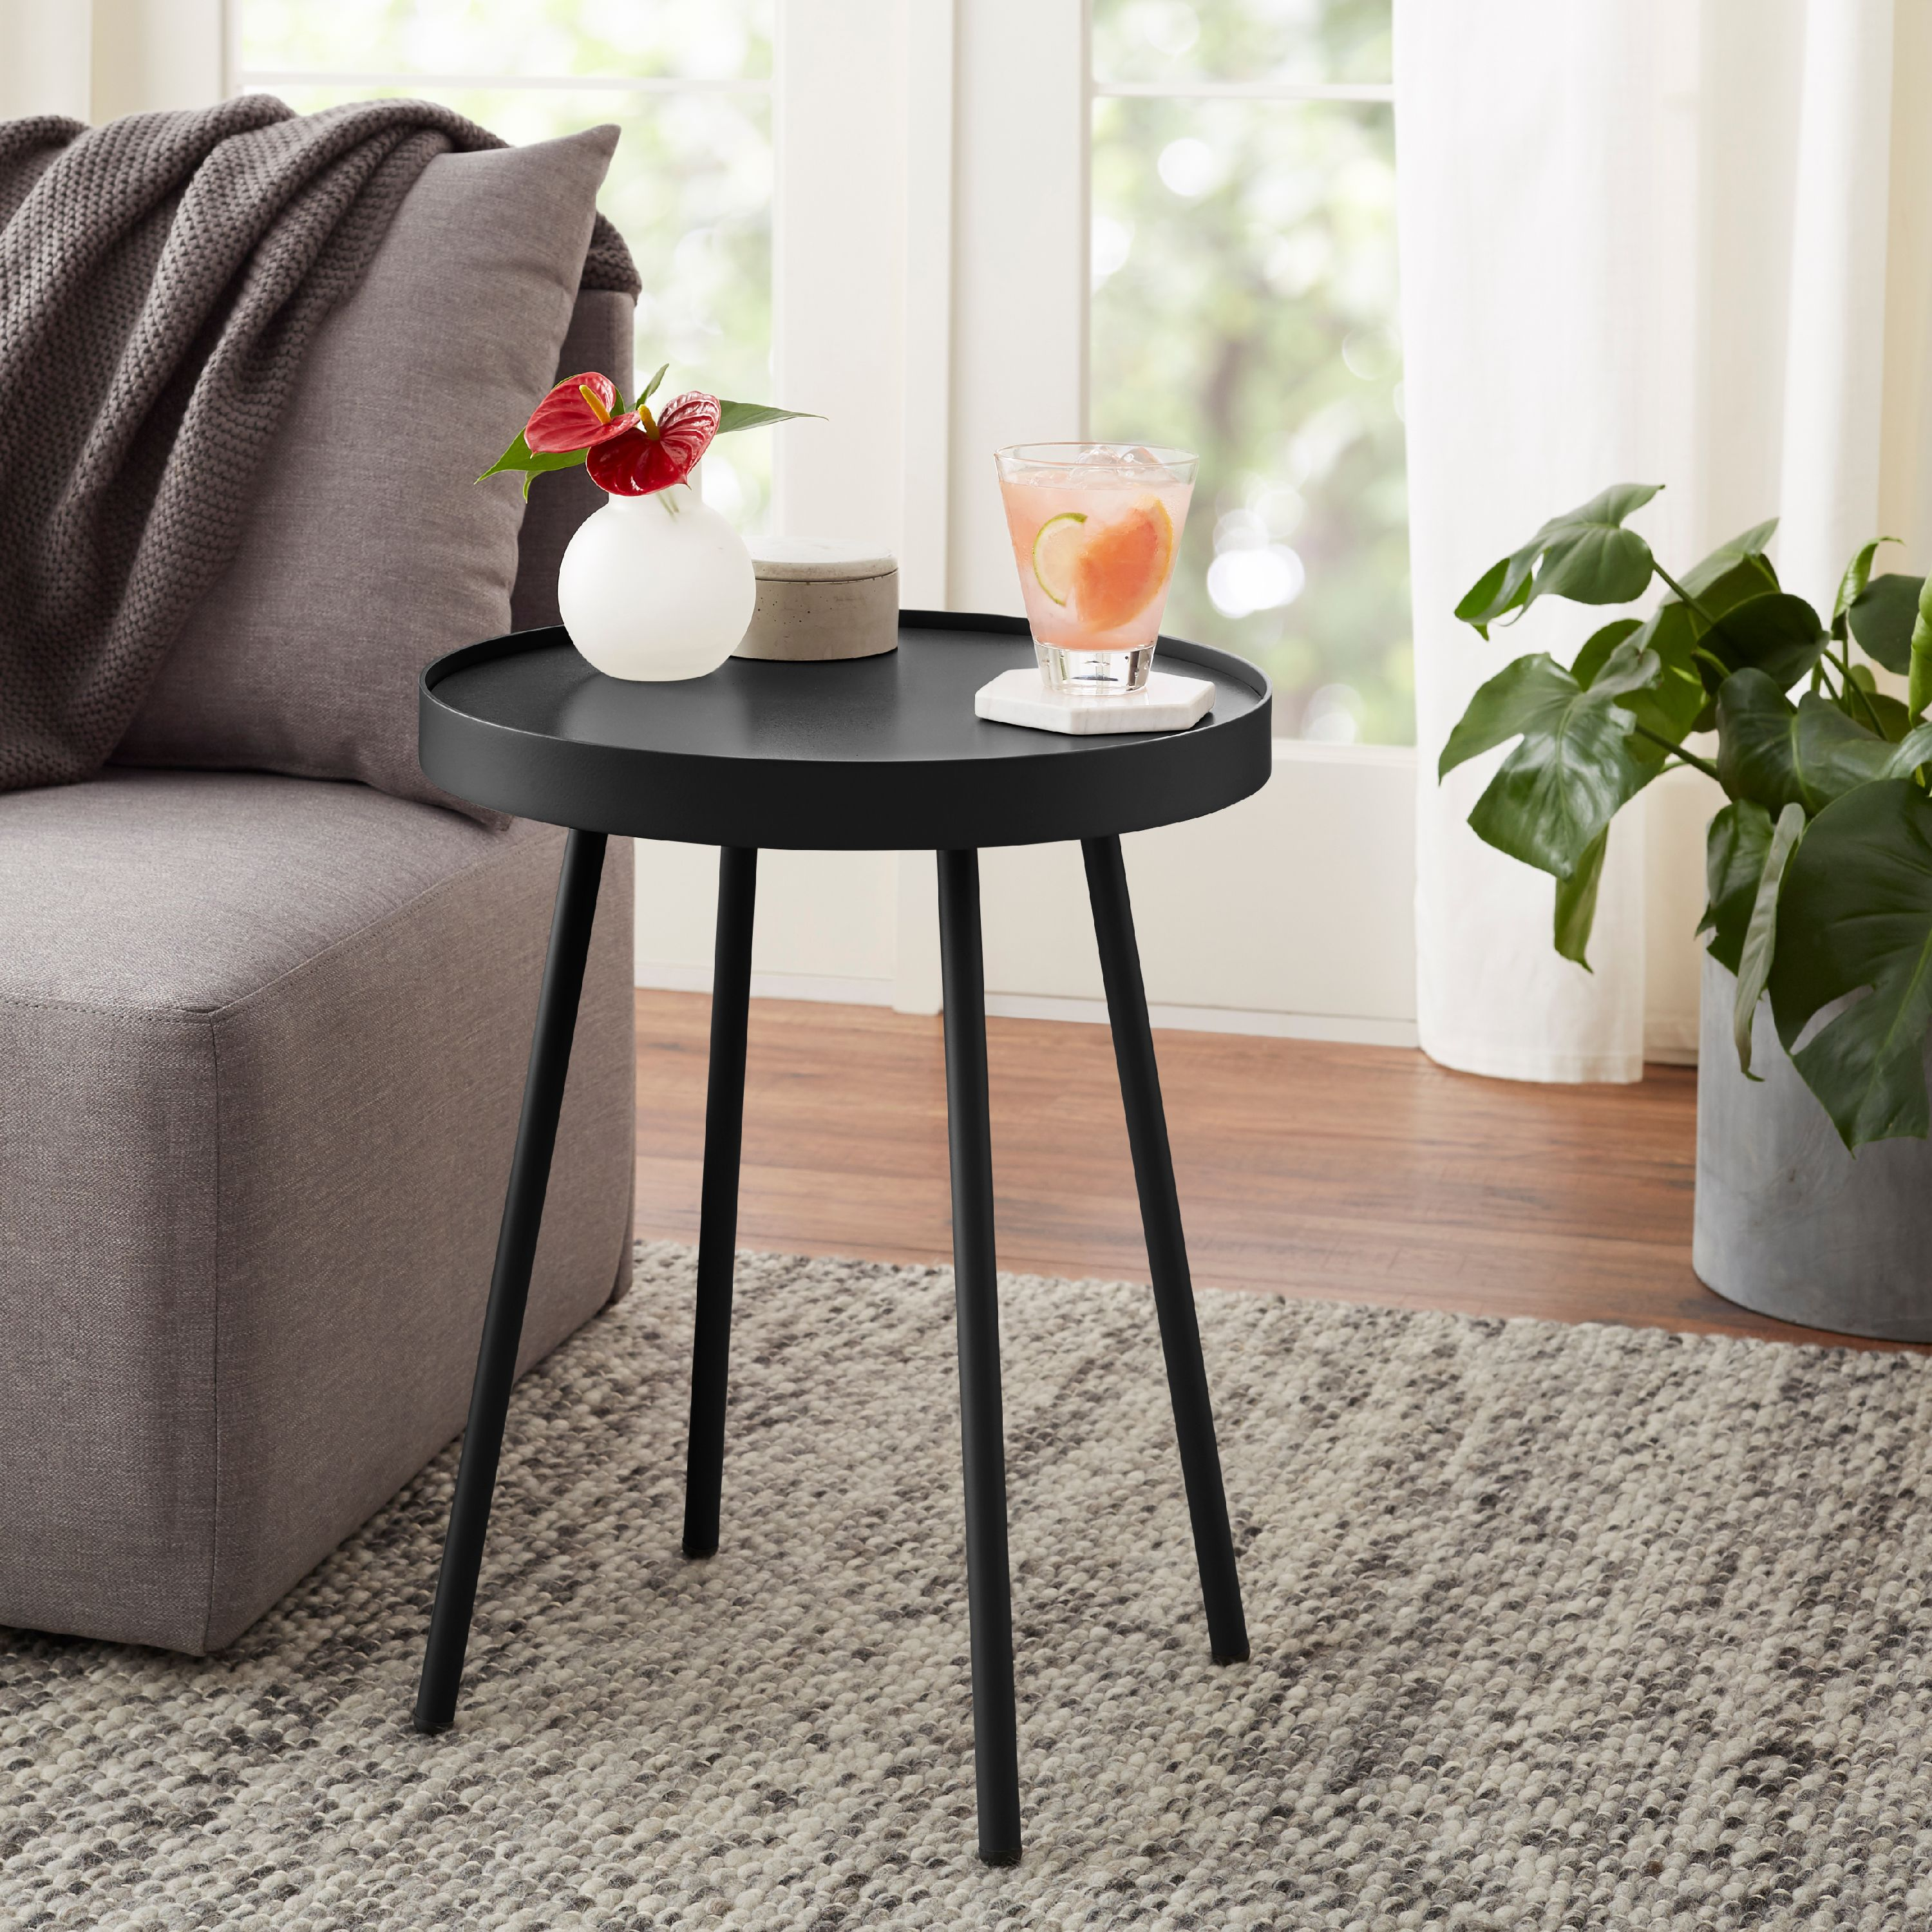 Mainstays Arlo Round Accent Table, Multiple Finishes